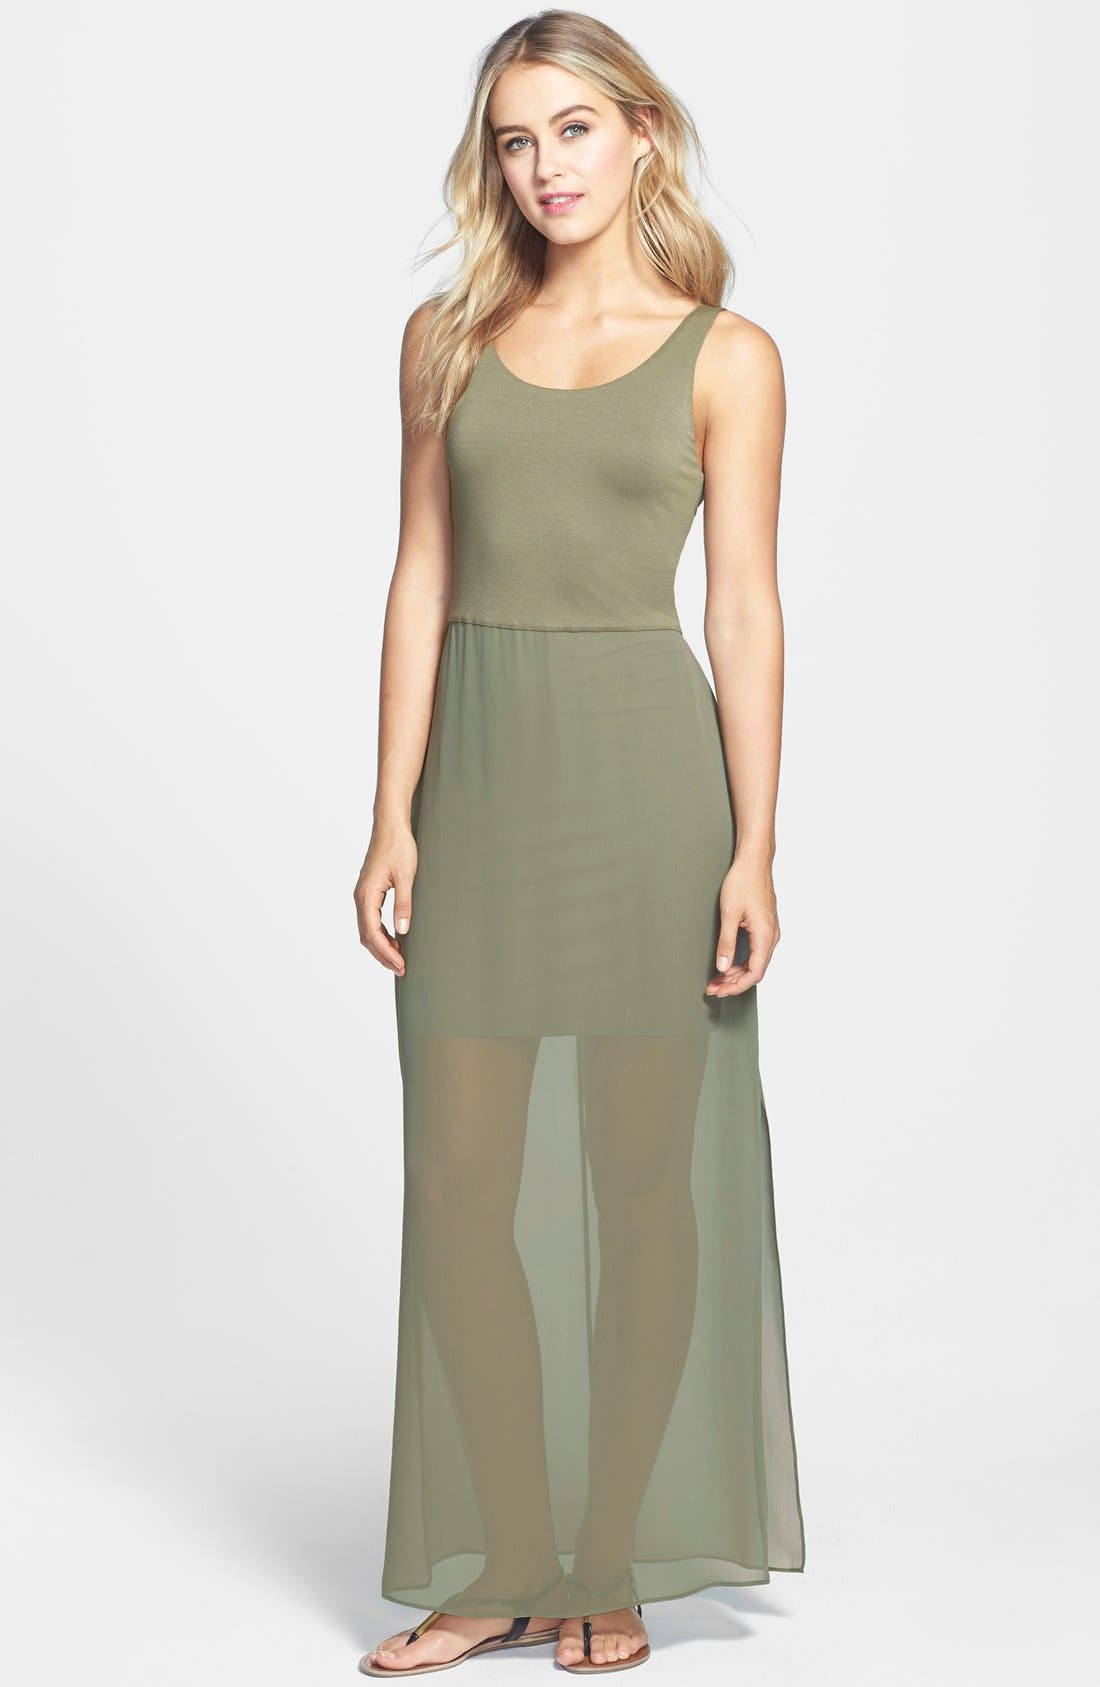 Main Image - Two by Vince Camuto Chiffon Overlay Maxi Dress